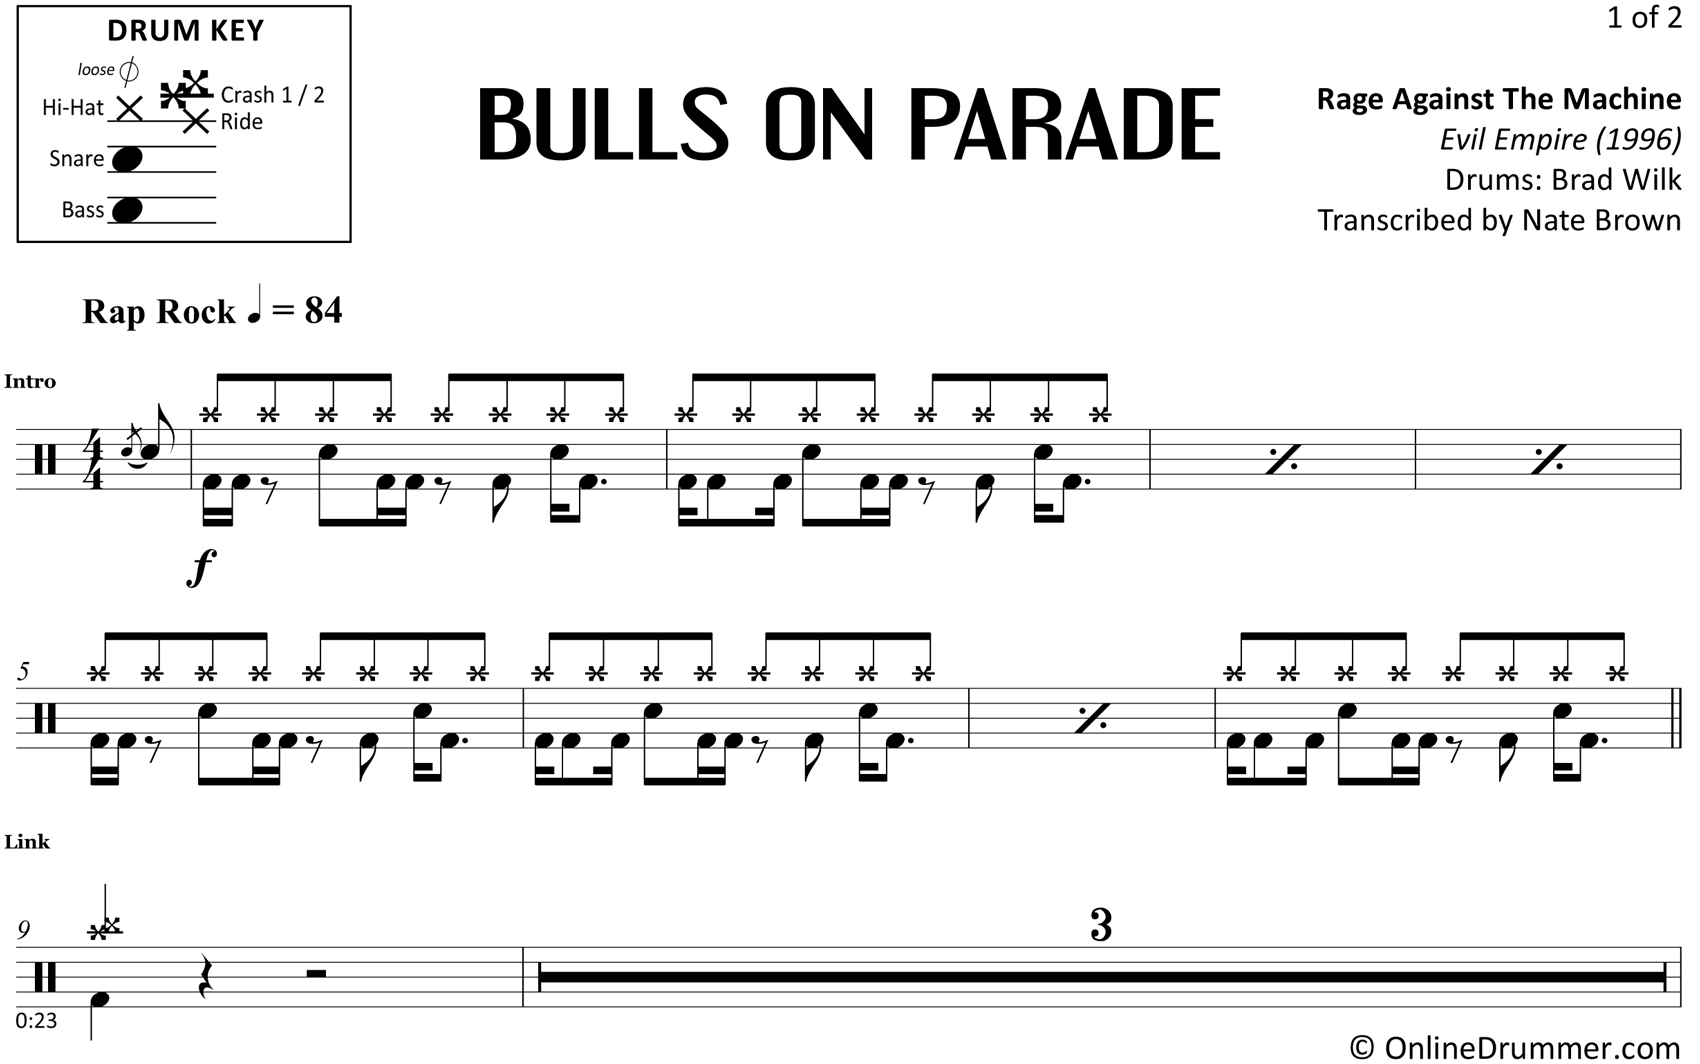 Bulls on Parade - Rage Against the Machine - Drum Sheet Music